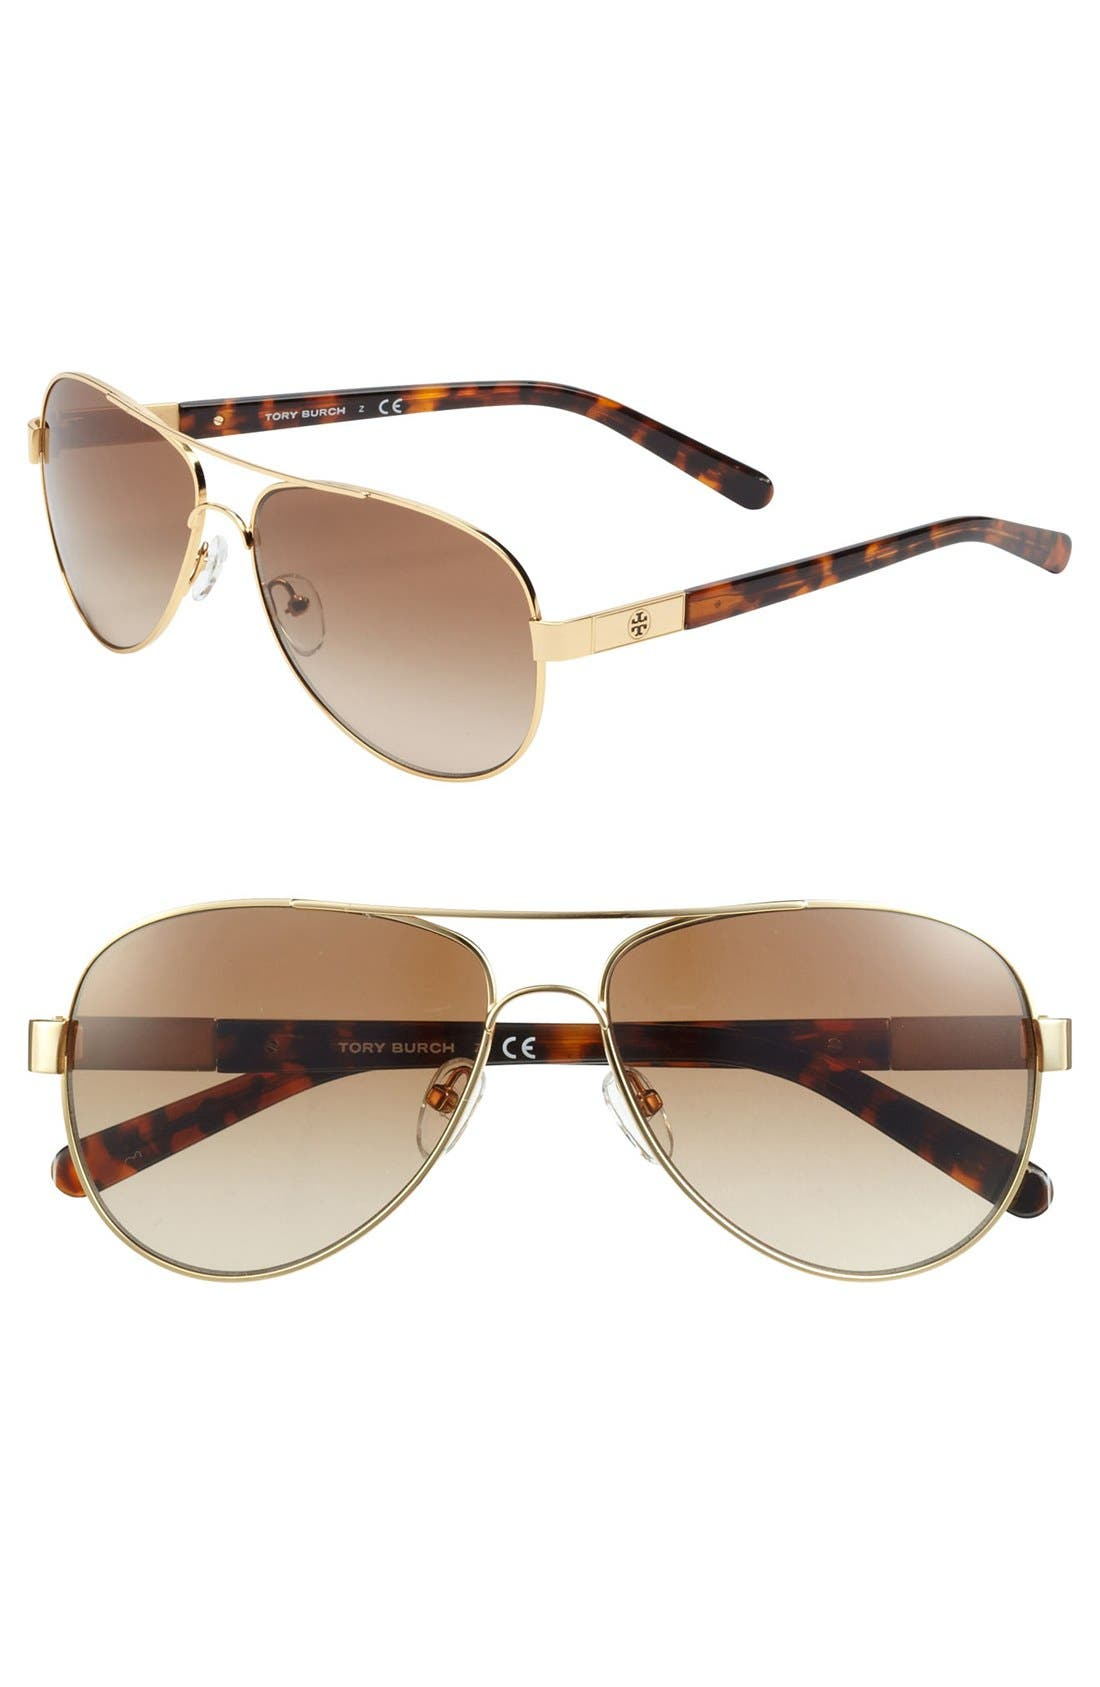 Main Image - Tory Burch 57mm Metal Aviator Sunglasses